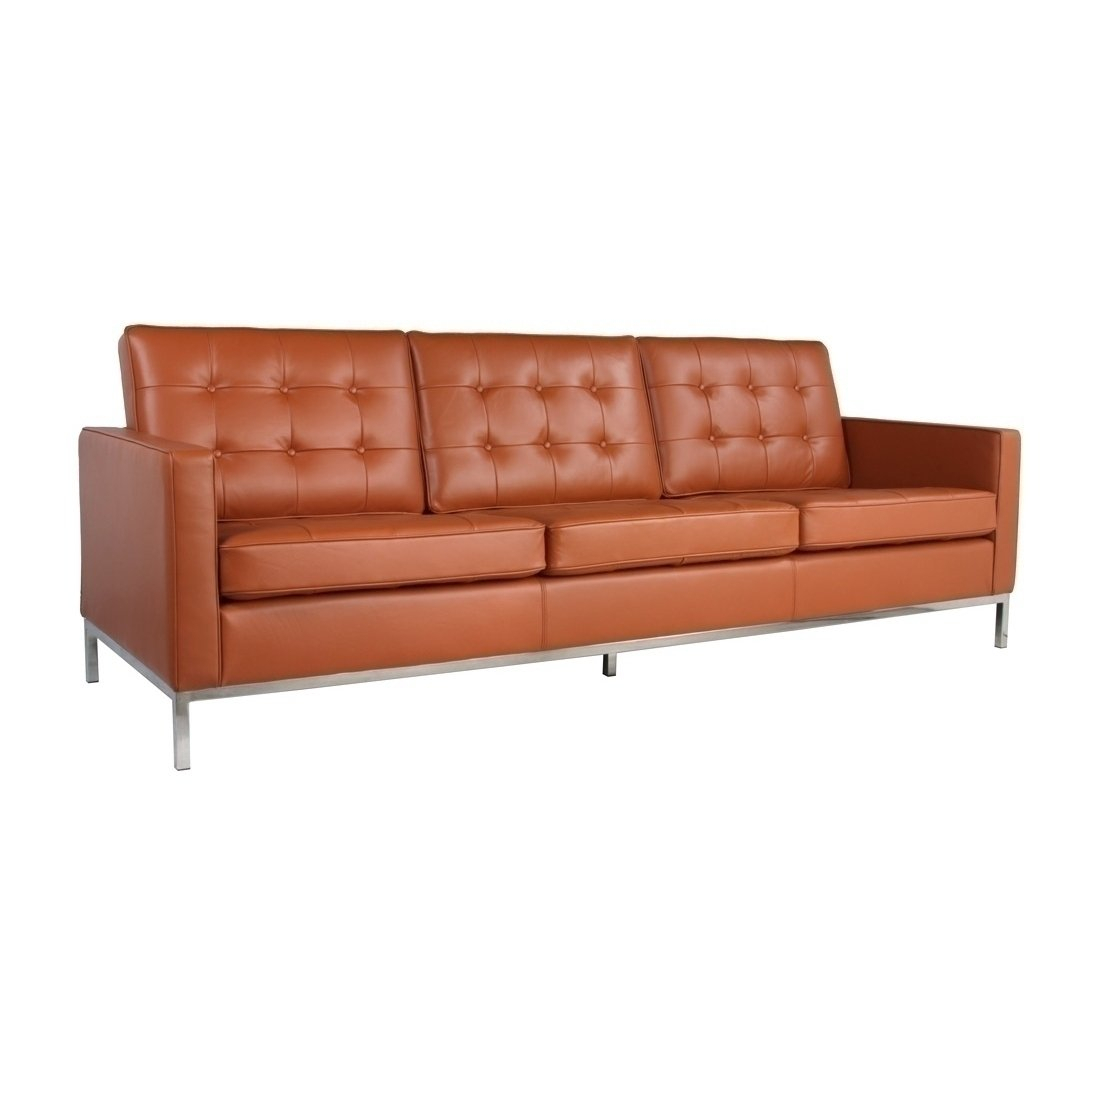 Geneva   Florence Leather Sofa   Florence   Honormill Regarding Florence Sofas And Loveseats (View 4 of 15)